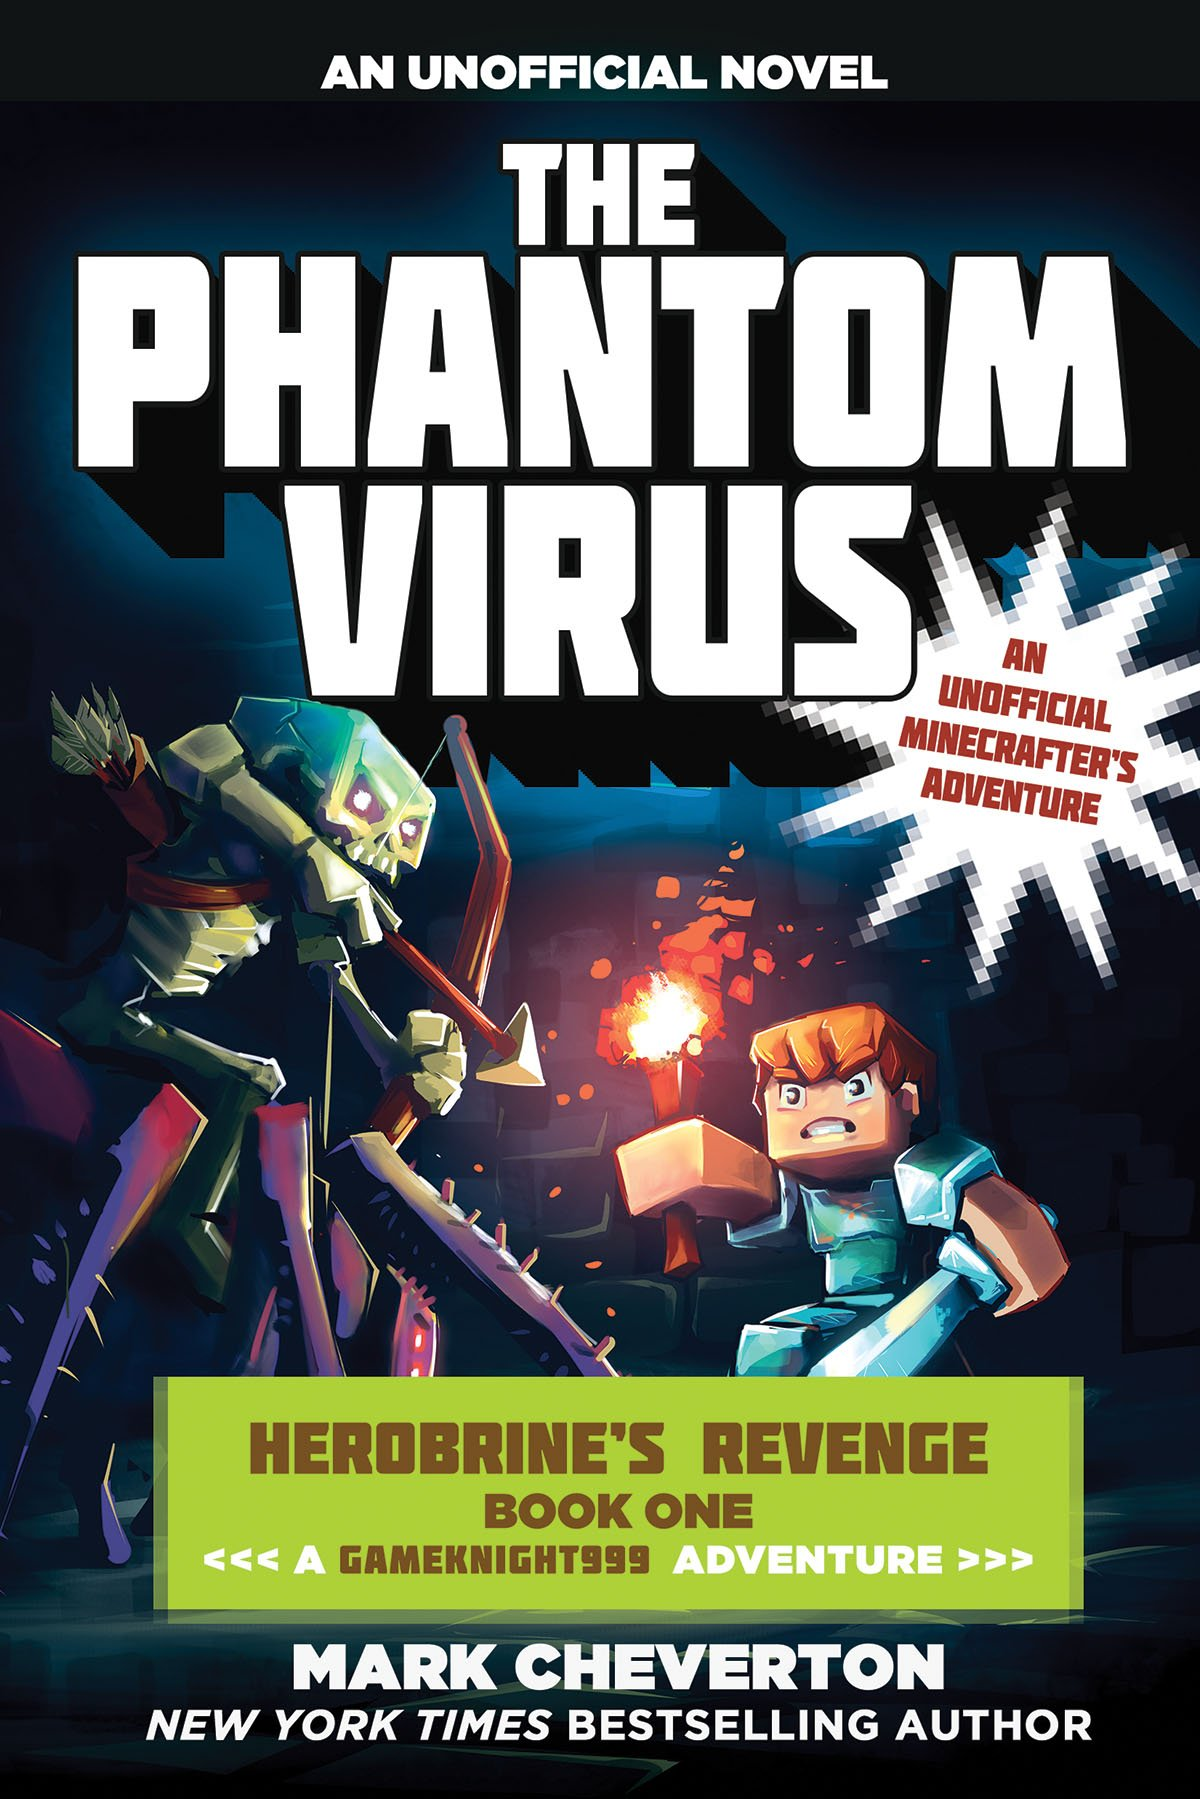 The Phantom Virus: Herobrine's Revenge Book One (A Gameknight999 Adventure): An Unofficial Minecrafter's Adventure (The Gameknight999 Series) ebook